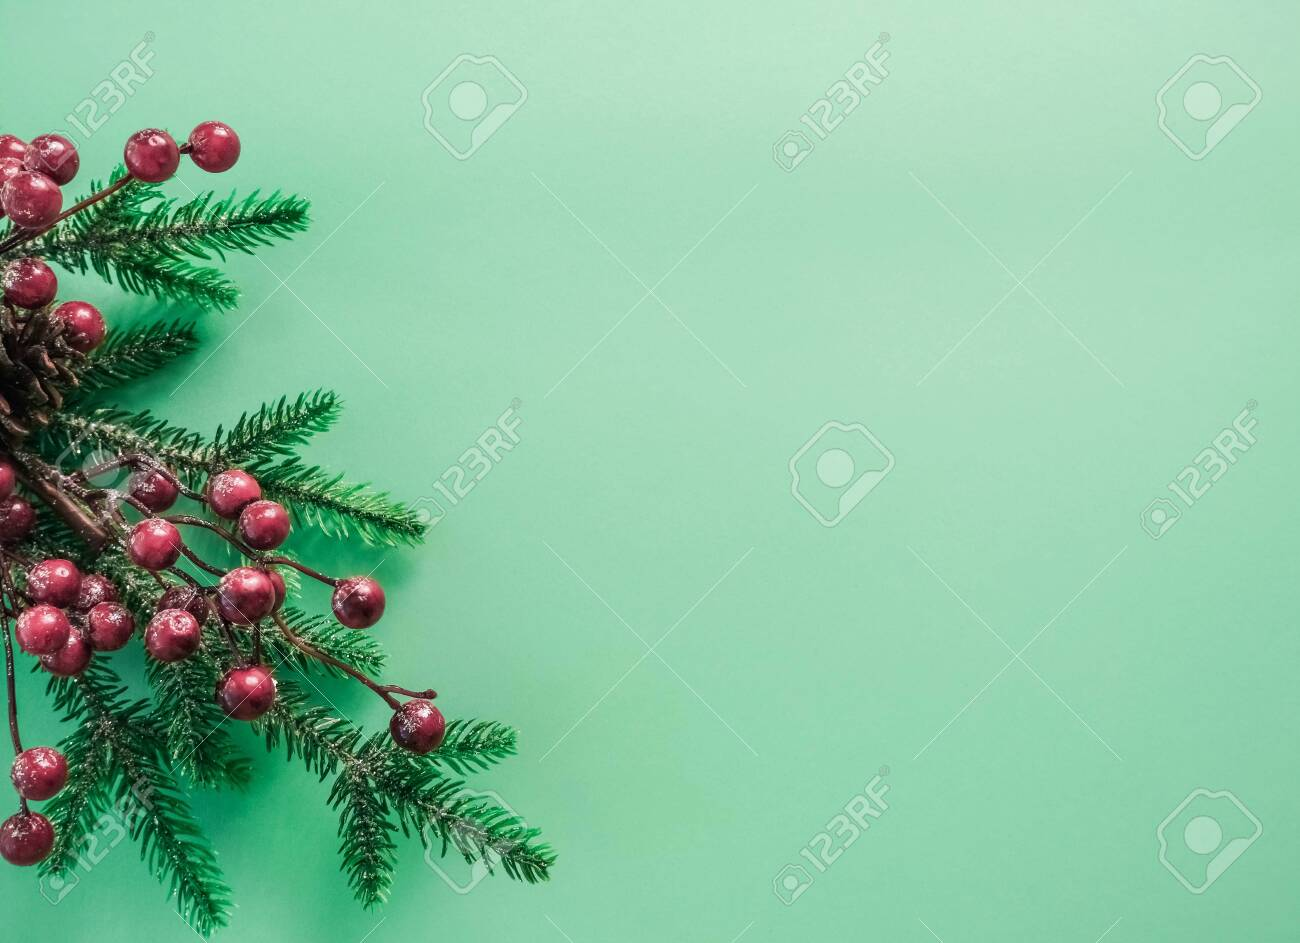 Christmas Decorations With Red Berries And Fir Branches On A Stock Photo Picture And Royalty Free Image Image 132292007